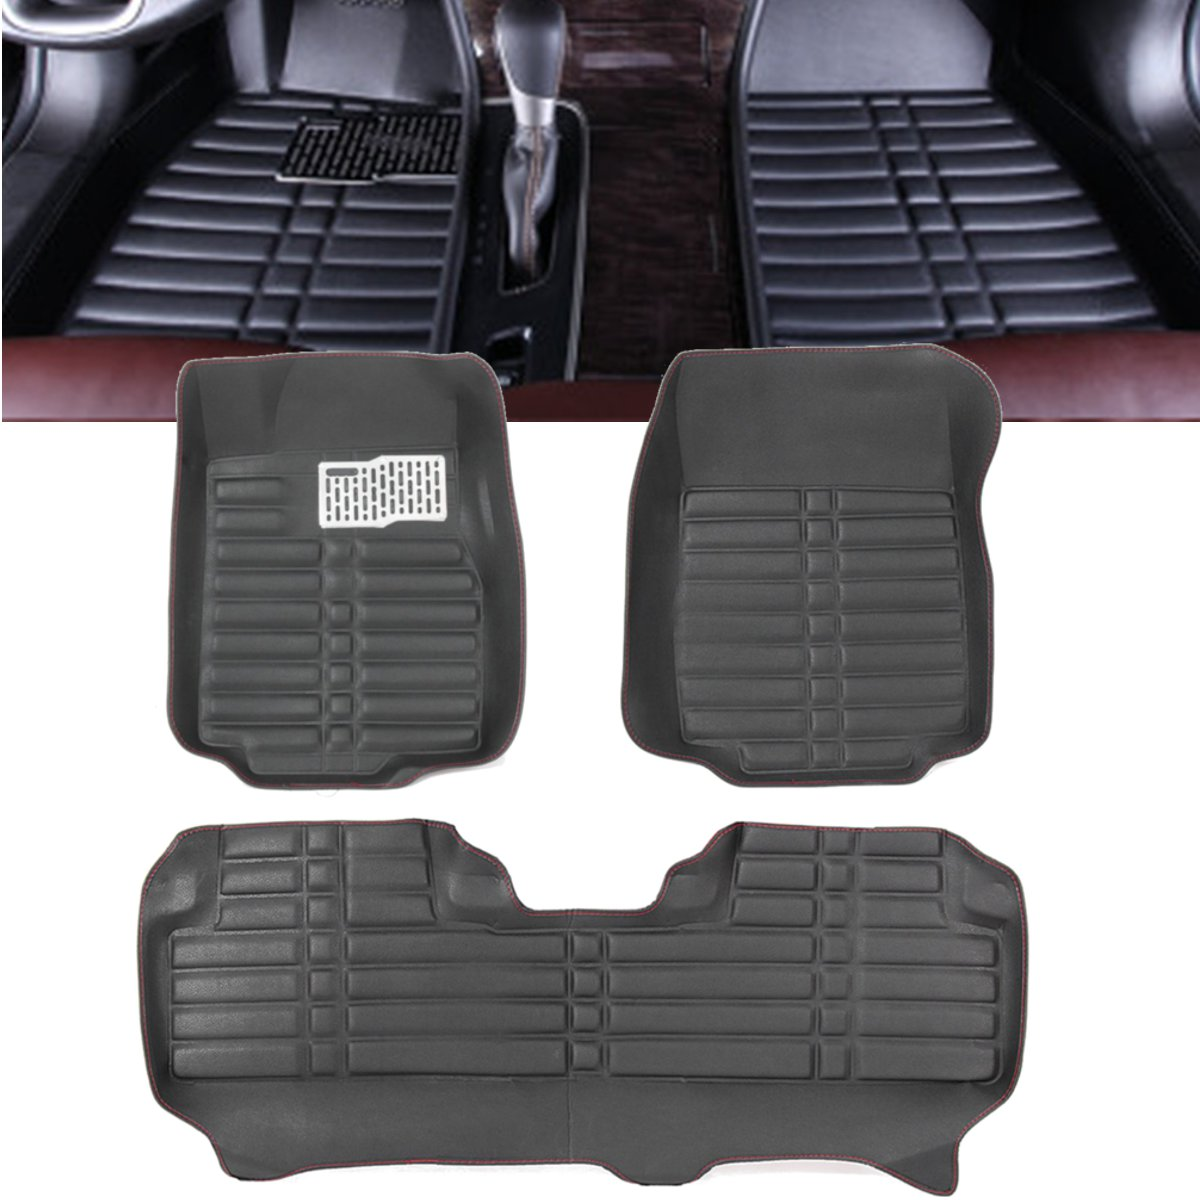 3Pcs Black Car Floor Cover PU Leather Front Rear Liner Waterproof Mat for Honda for CRV 2012-2016 128x64cm/64x79cm/64x78cm3Pcs Black Car Floor Cover PU Leather Front Rear Liner Waterproof Mat for Honda for CRV 2012-2016 128x64cm/64x79cm/64x78cm